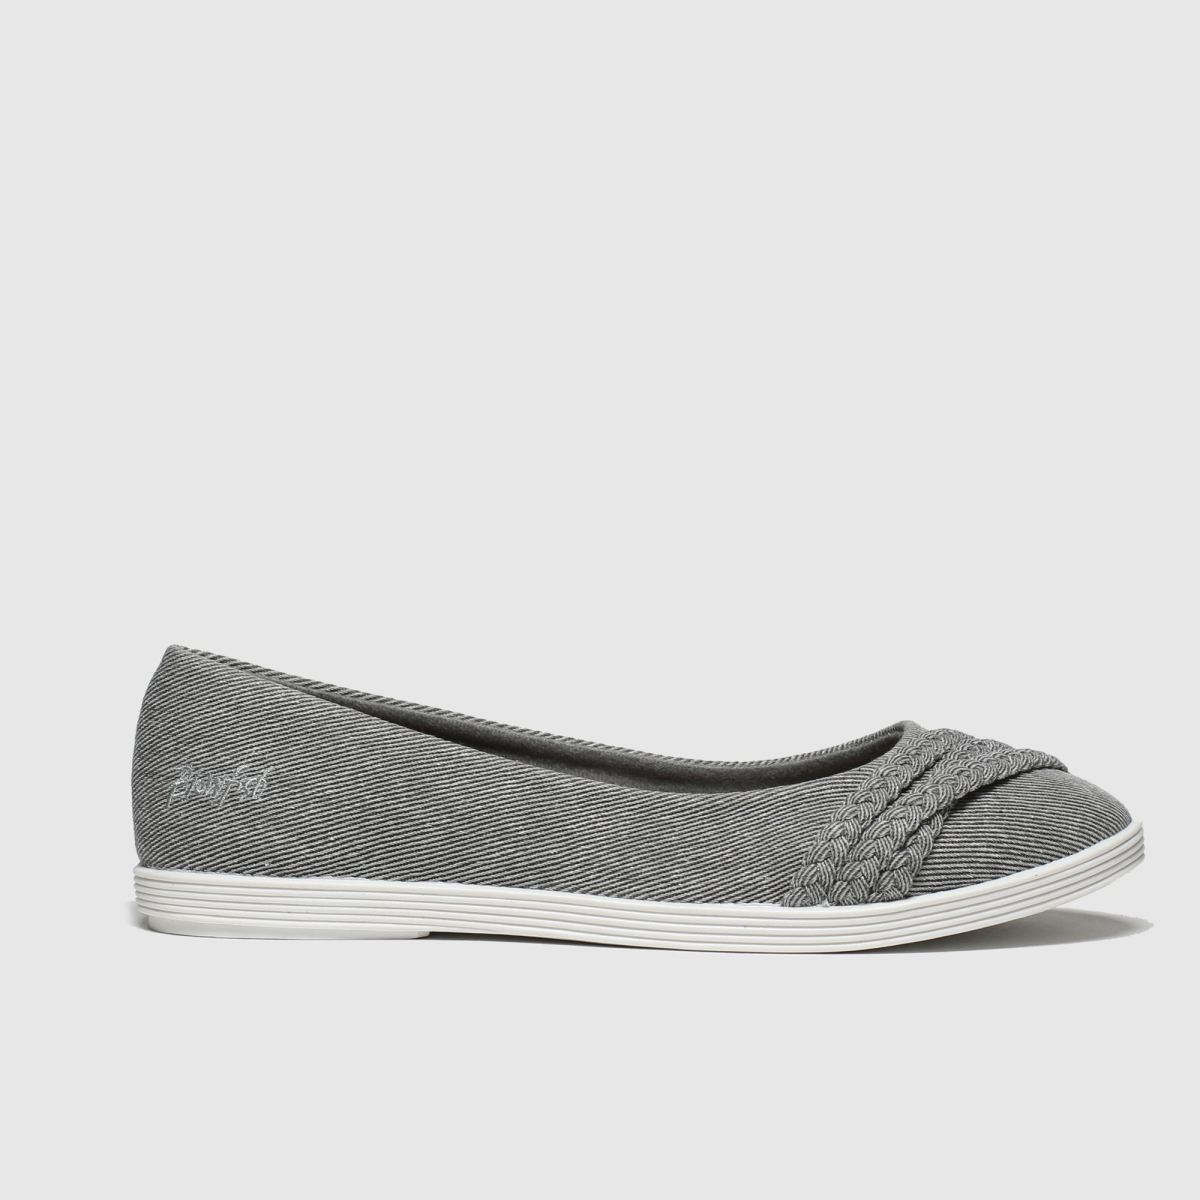 Blowfish Blowfish Grey Giddie Flat Shoes